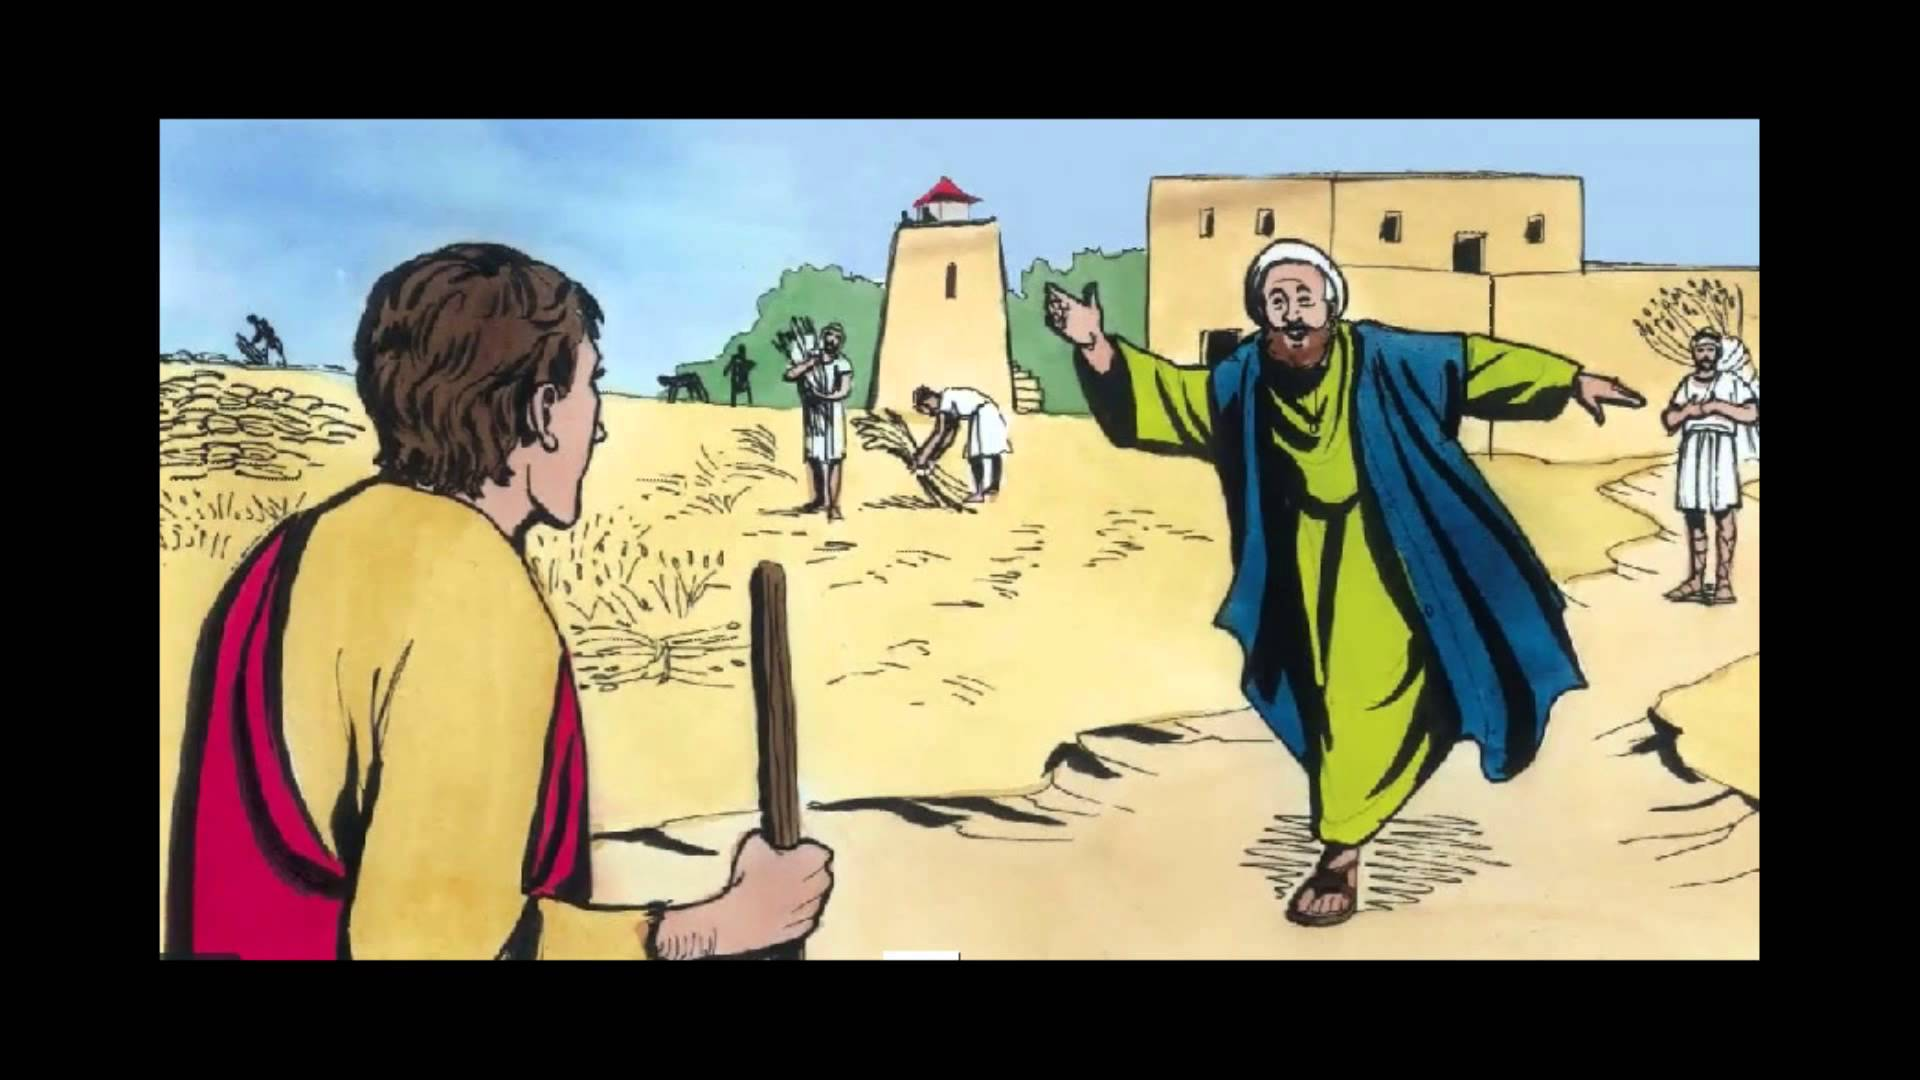 The Unnoticed Plot Twist In The Story Of The Prodigal Son